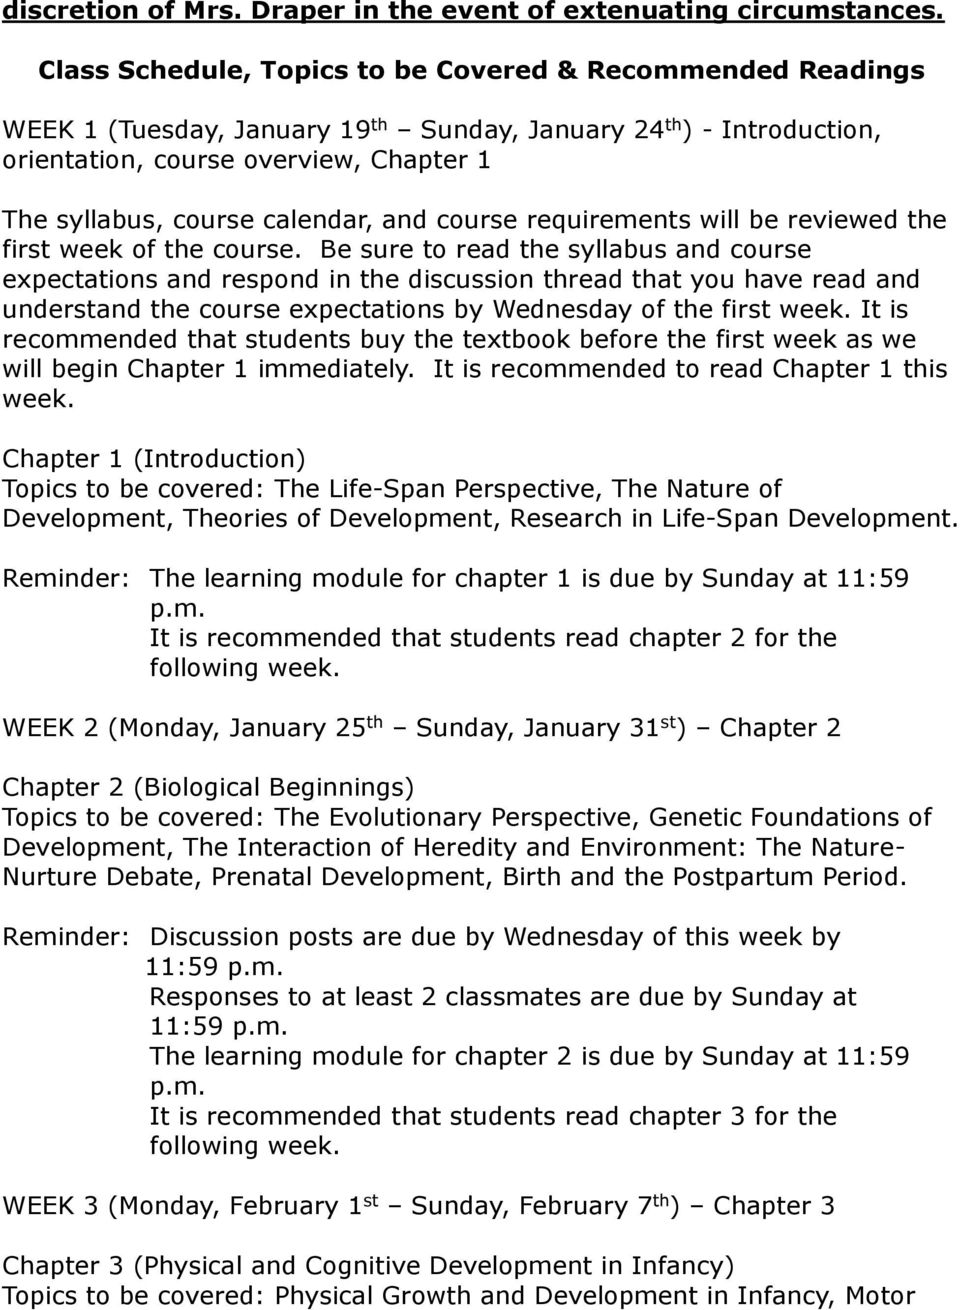 calendar, and course requirements will be reviewed the first week of the course.